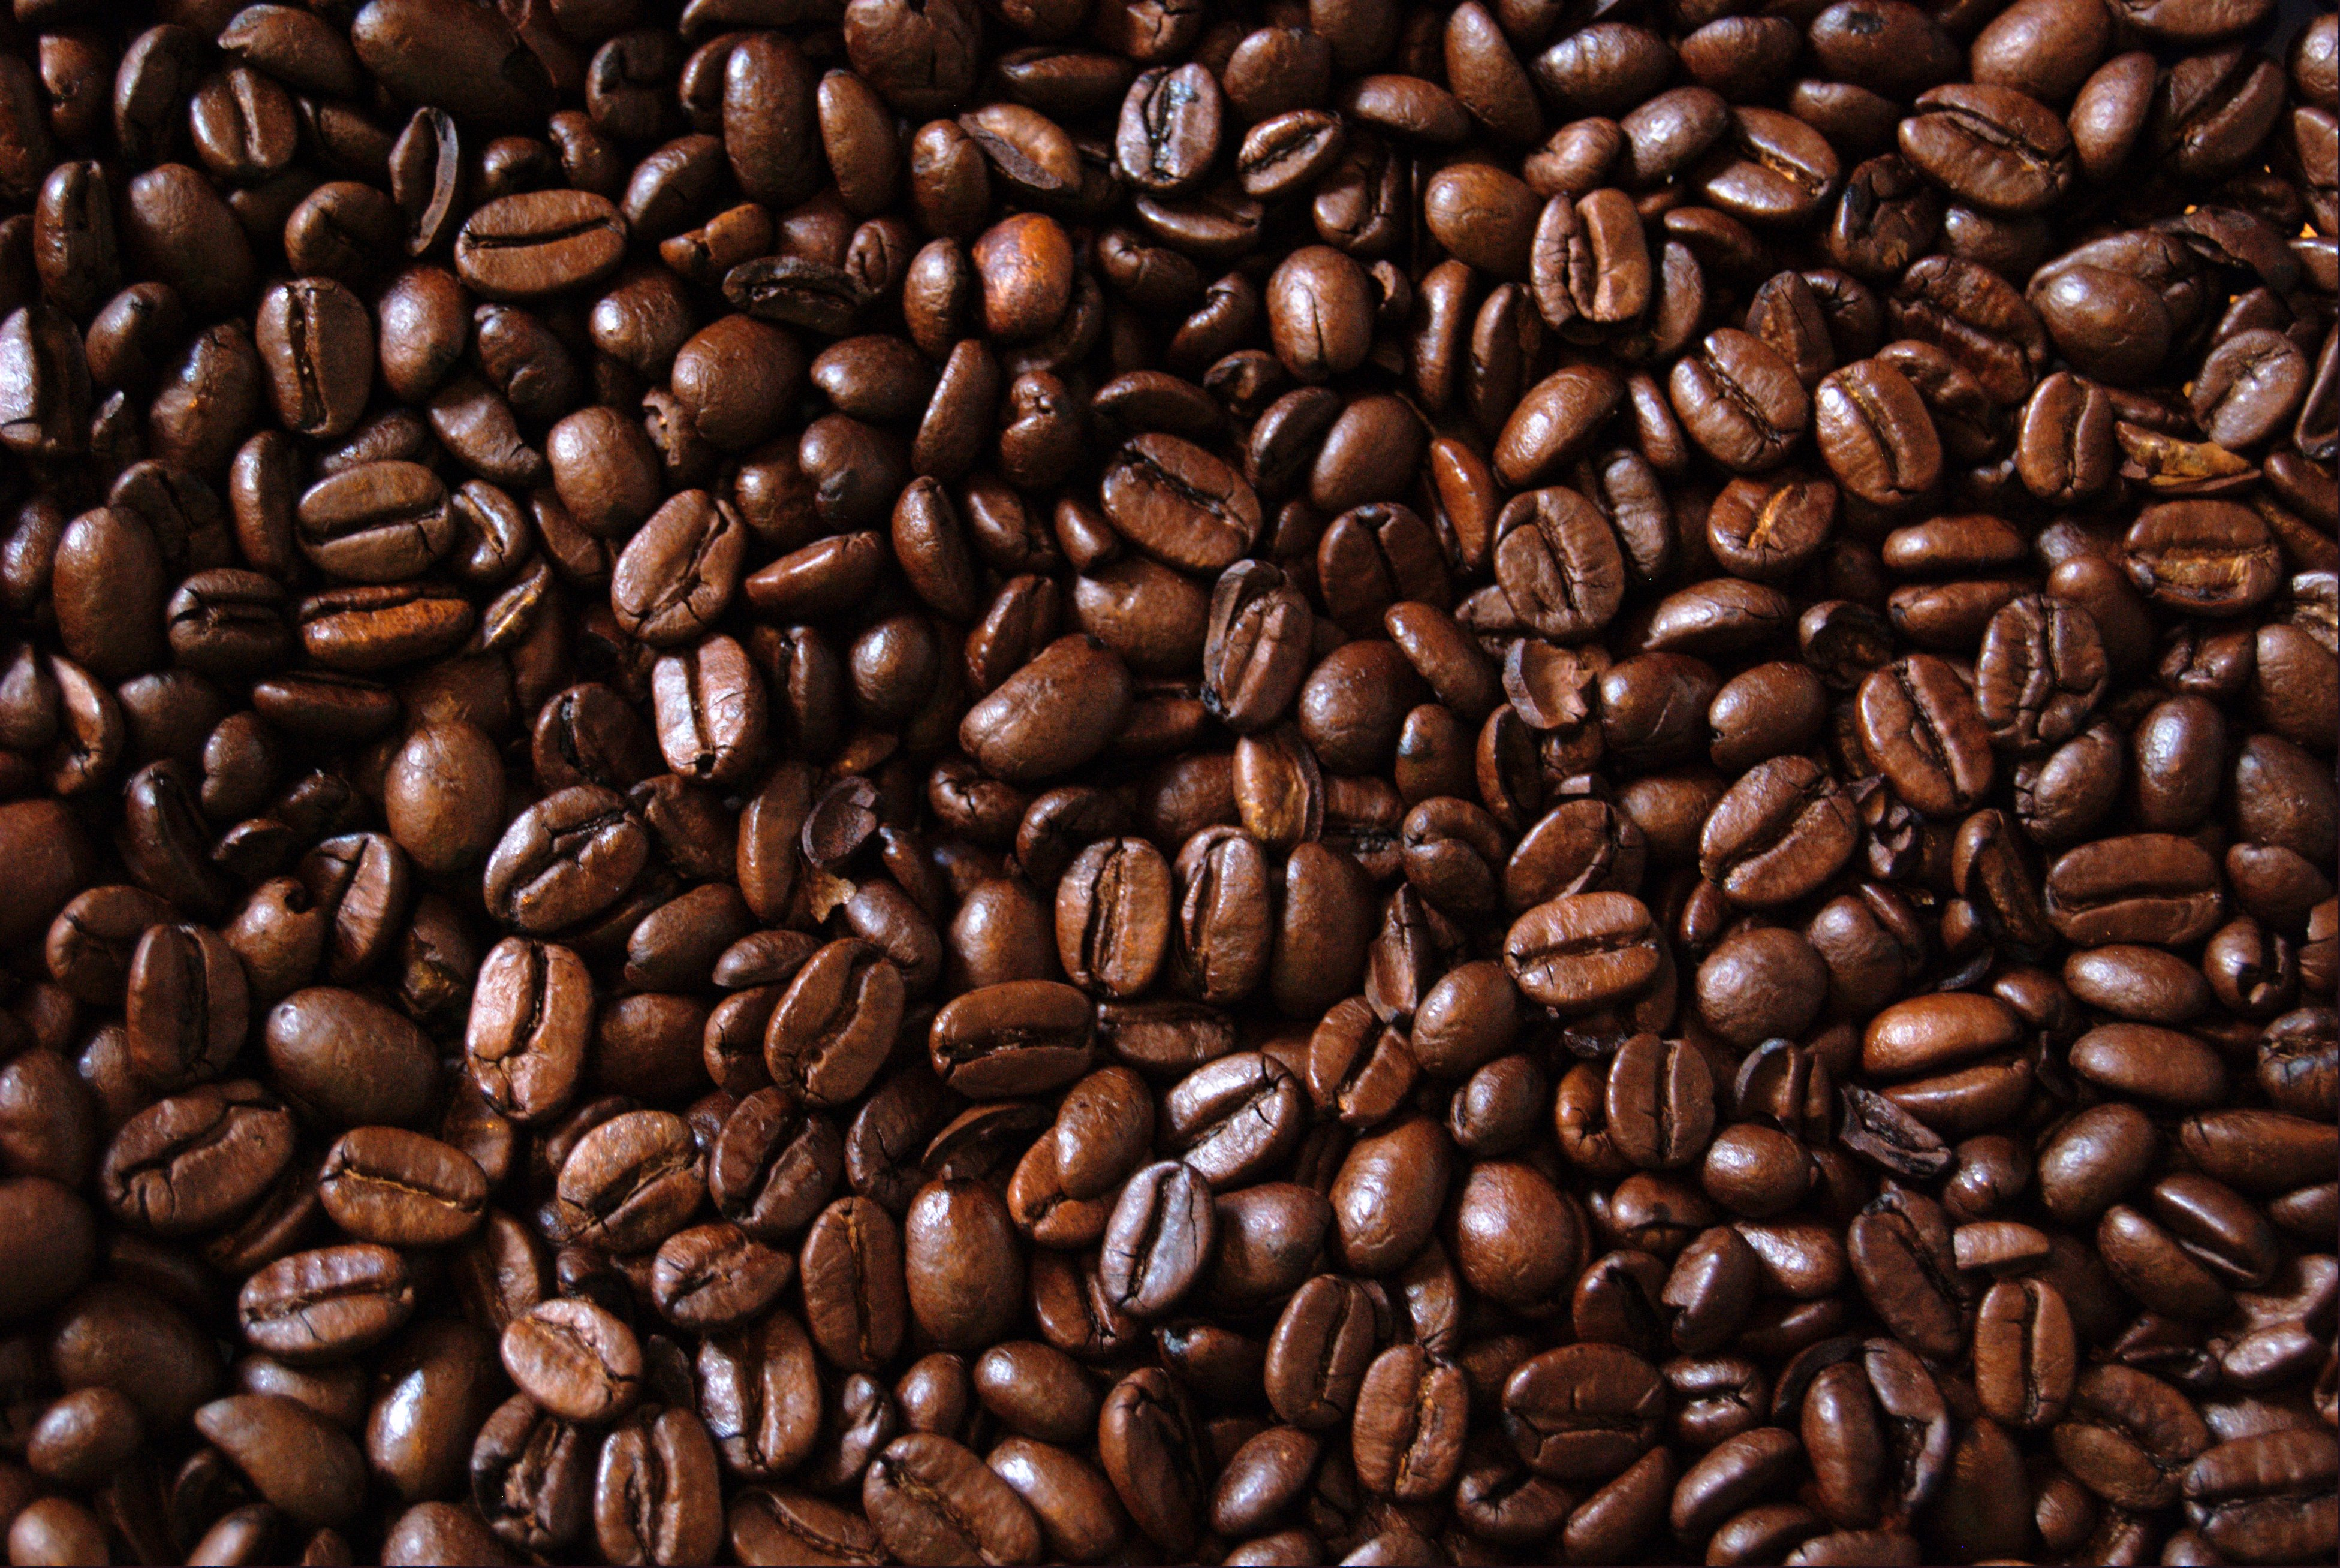 Javacycle Partners With Mzb To Turn Coffee Bean Waste Into